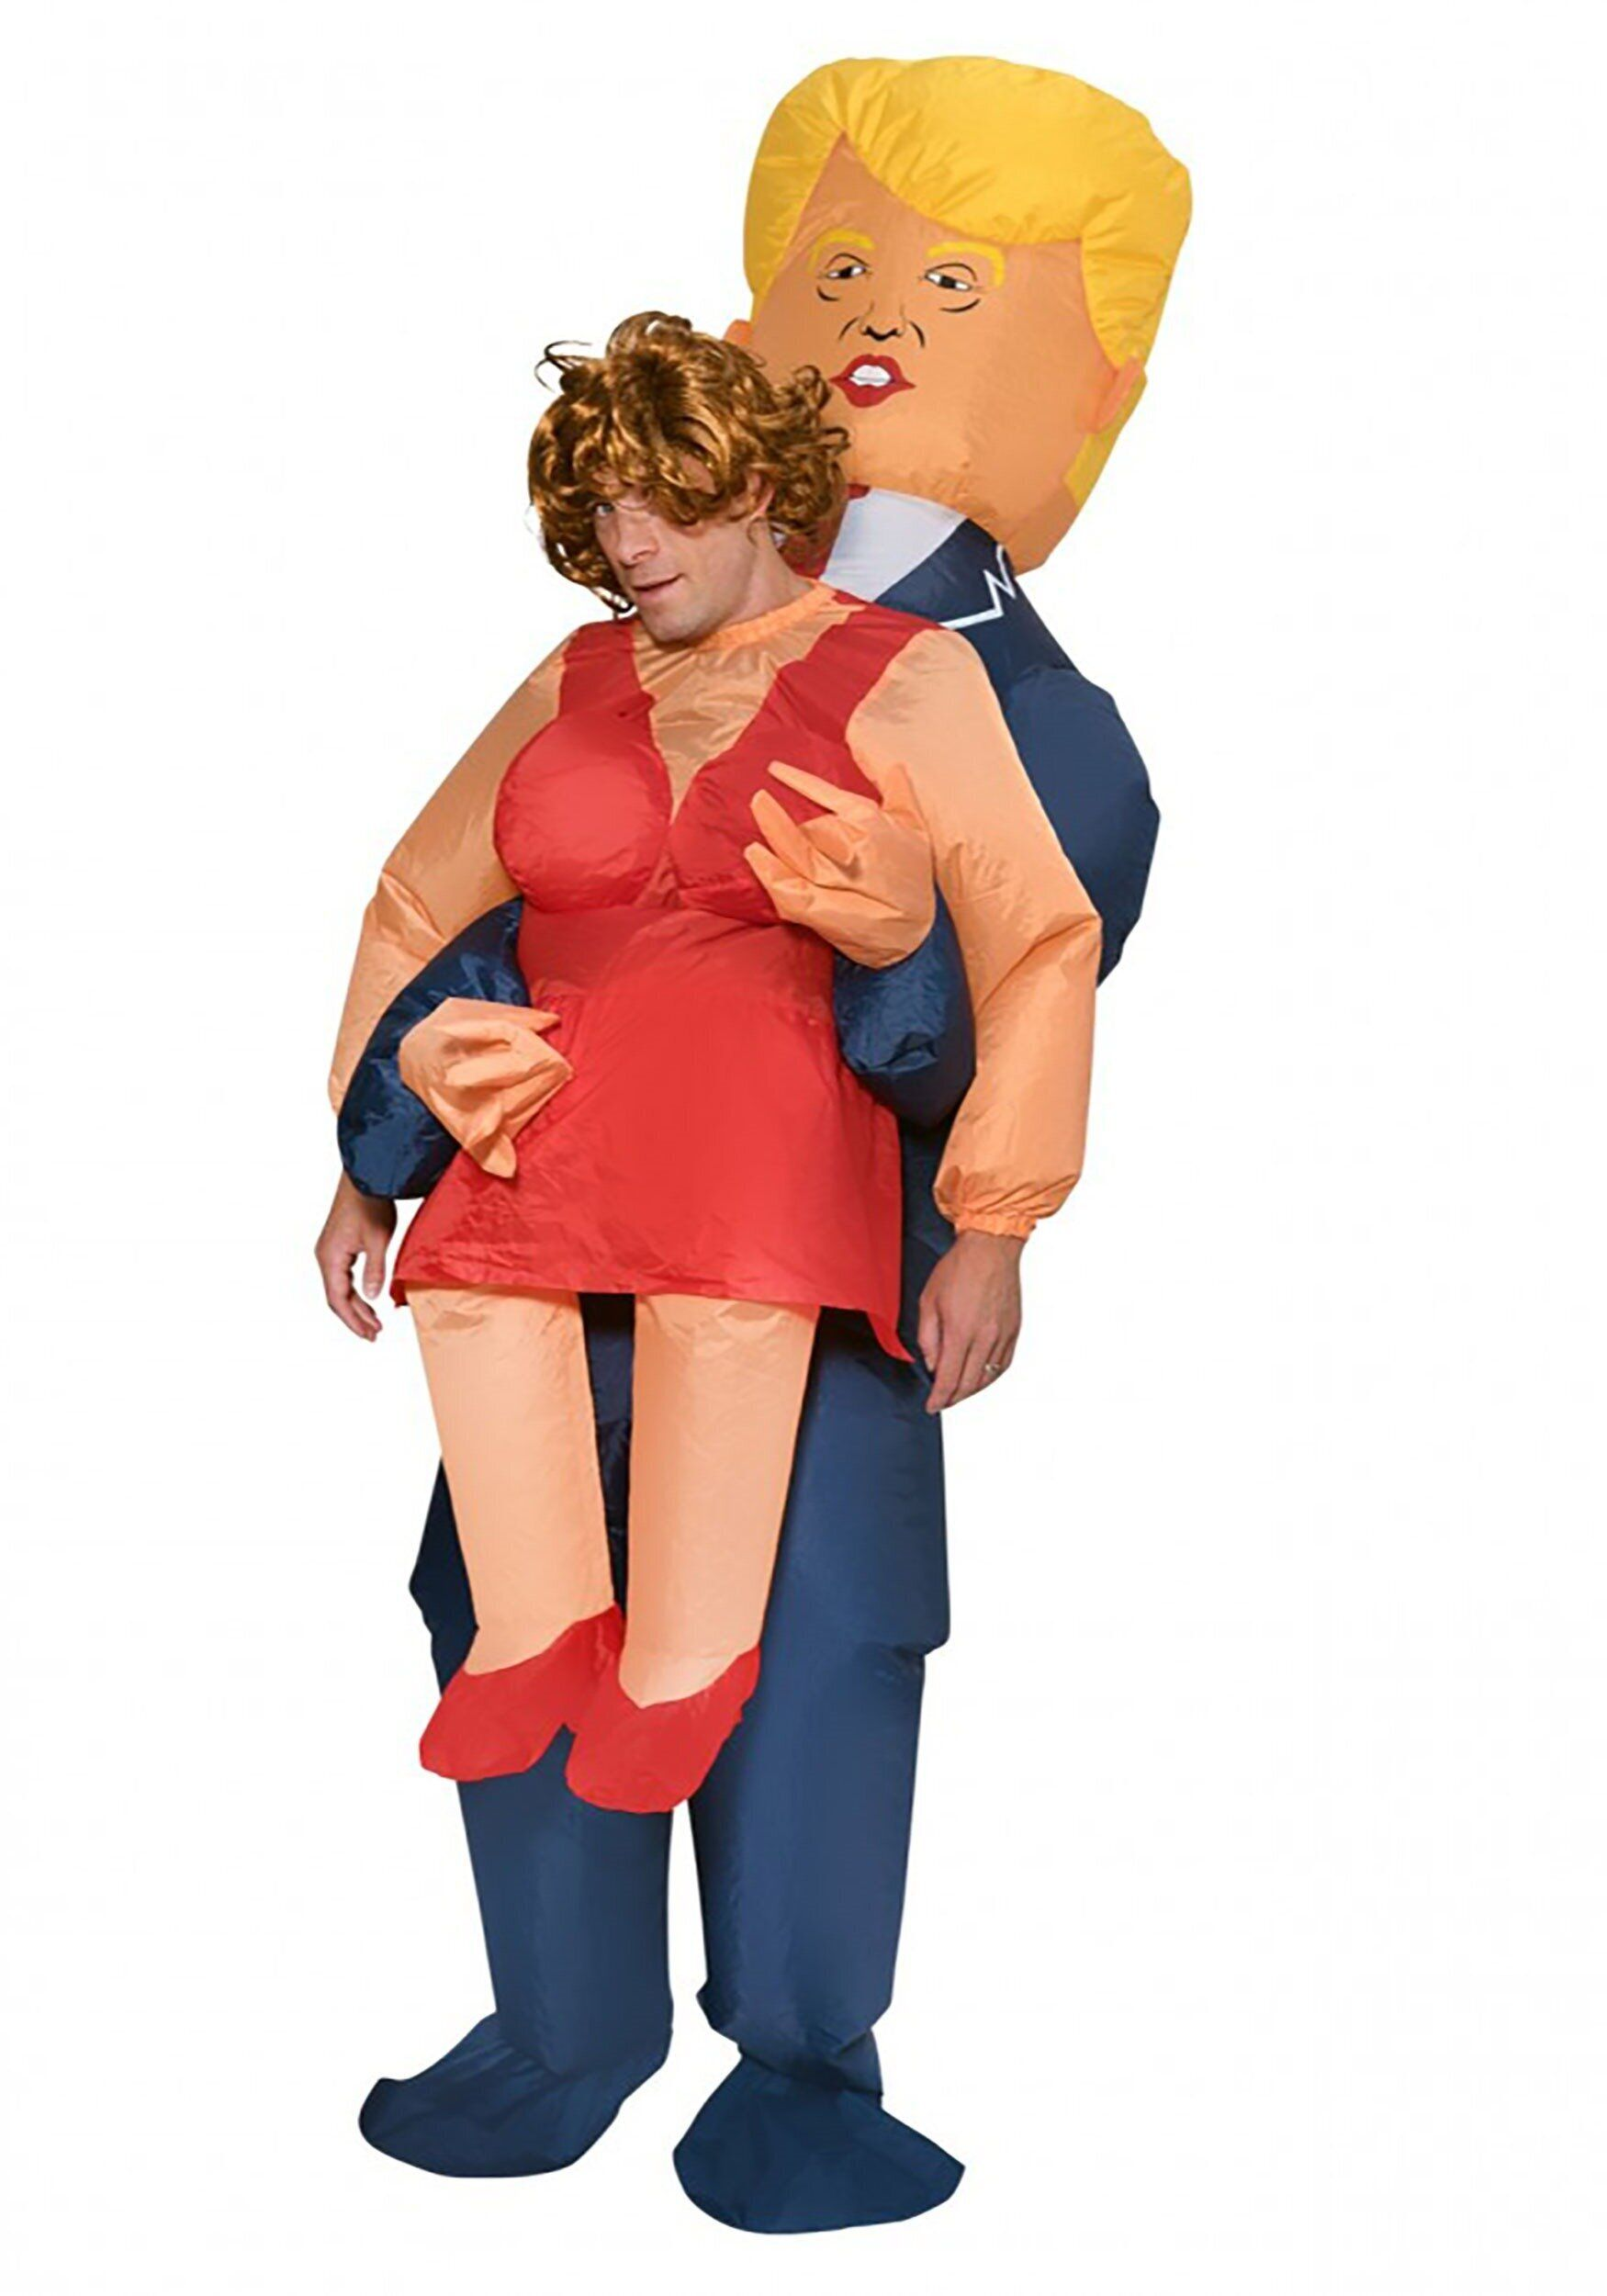 """Any costume that shows <a href=""""https://www.halloweencostumes.com/adult-inflatable-presidential-pick-me-up-costume.html"""" targ"""